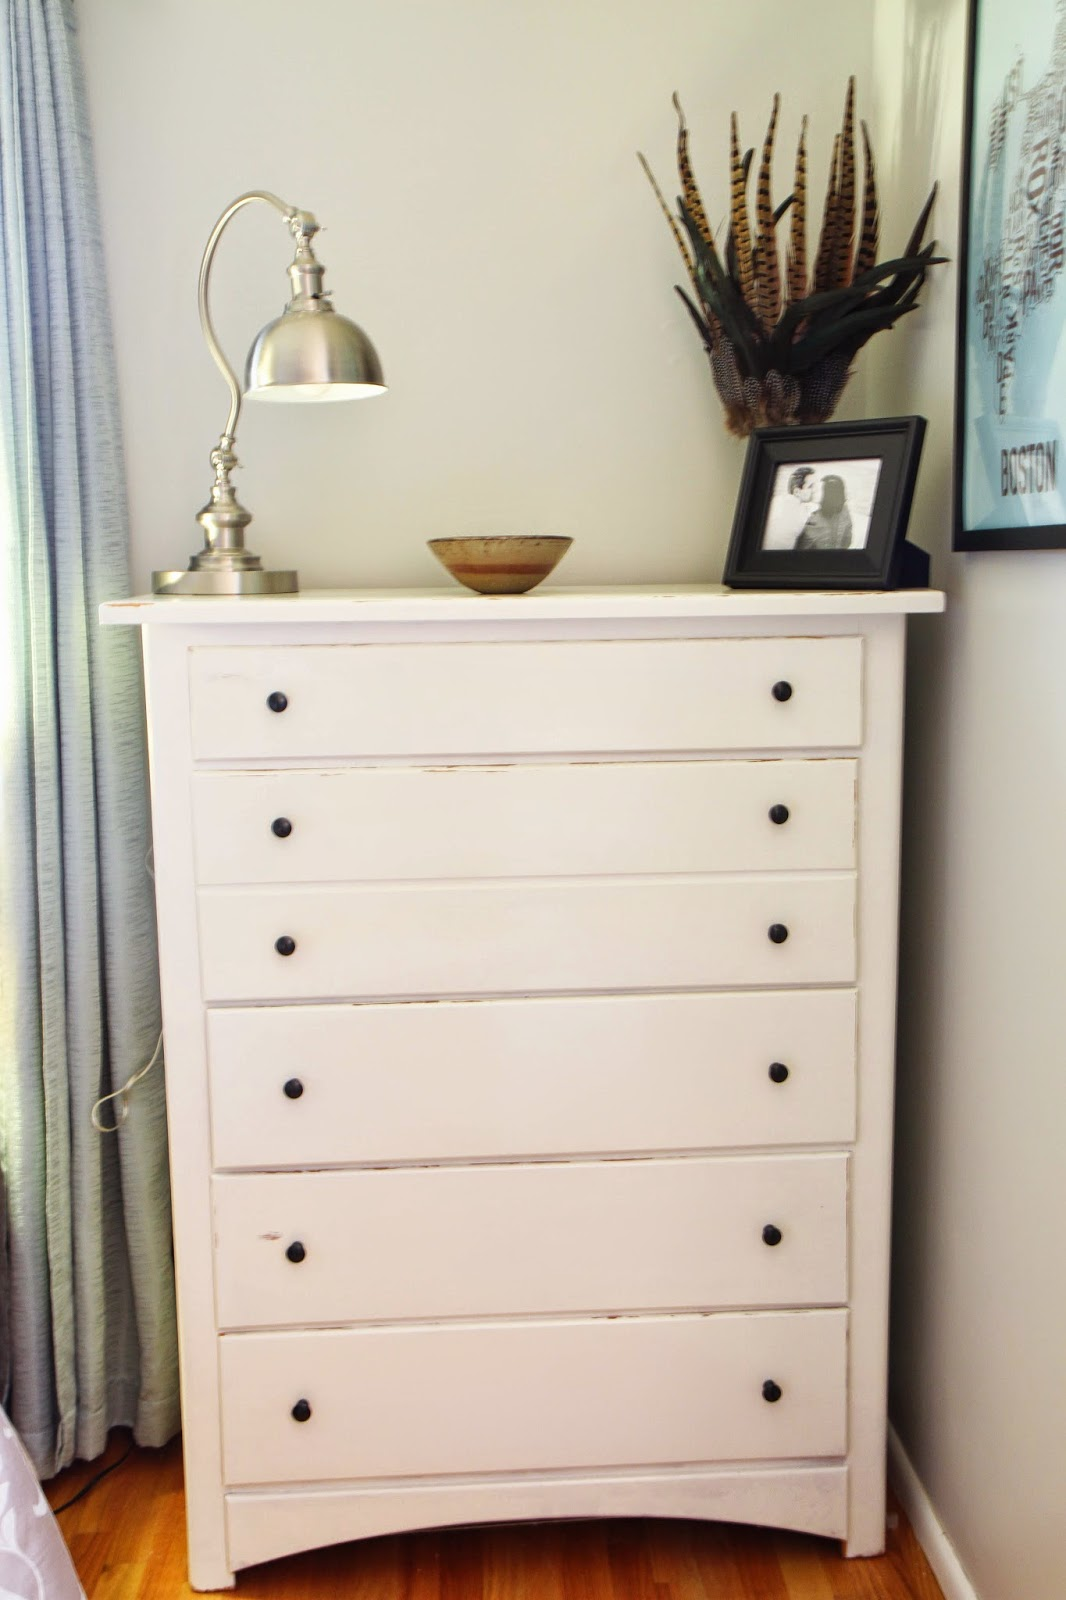 Goodwill Tips: 7 Fresh Furniture Painting Ideas